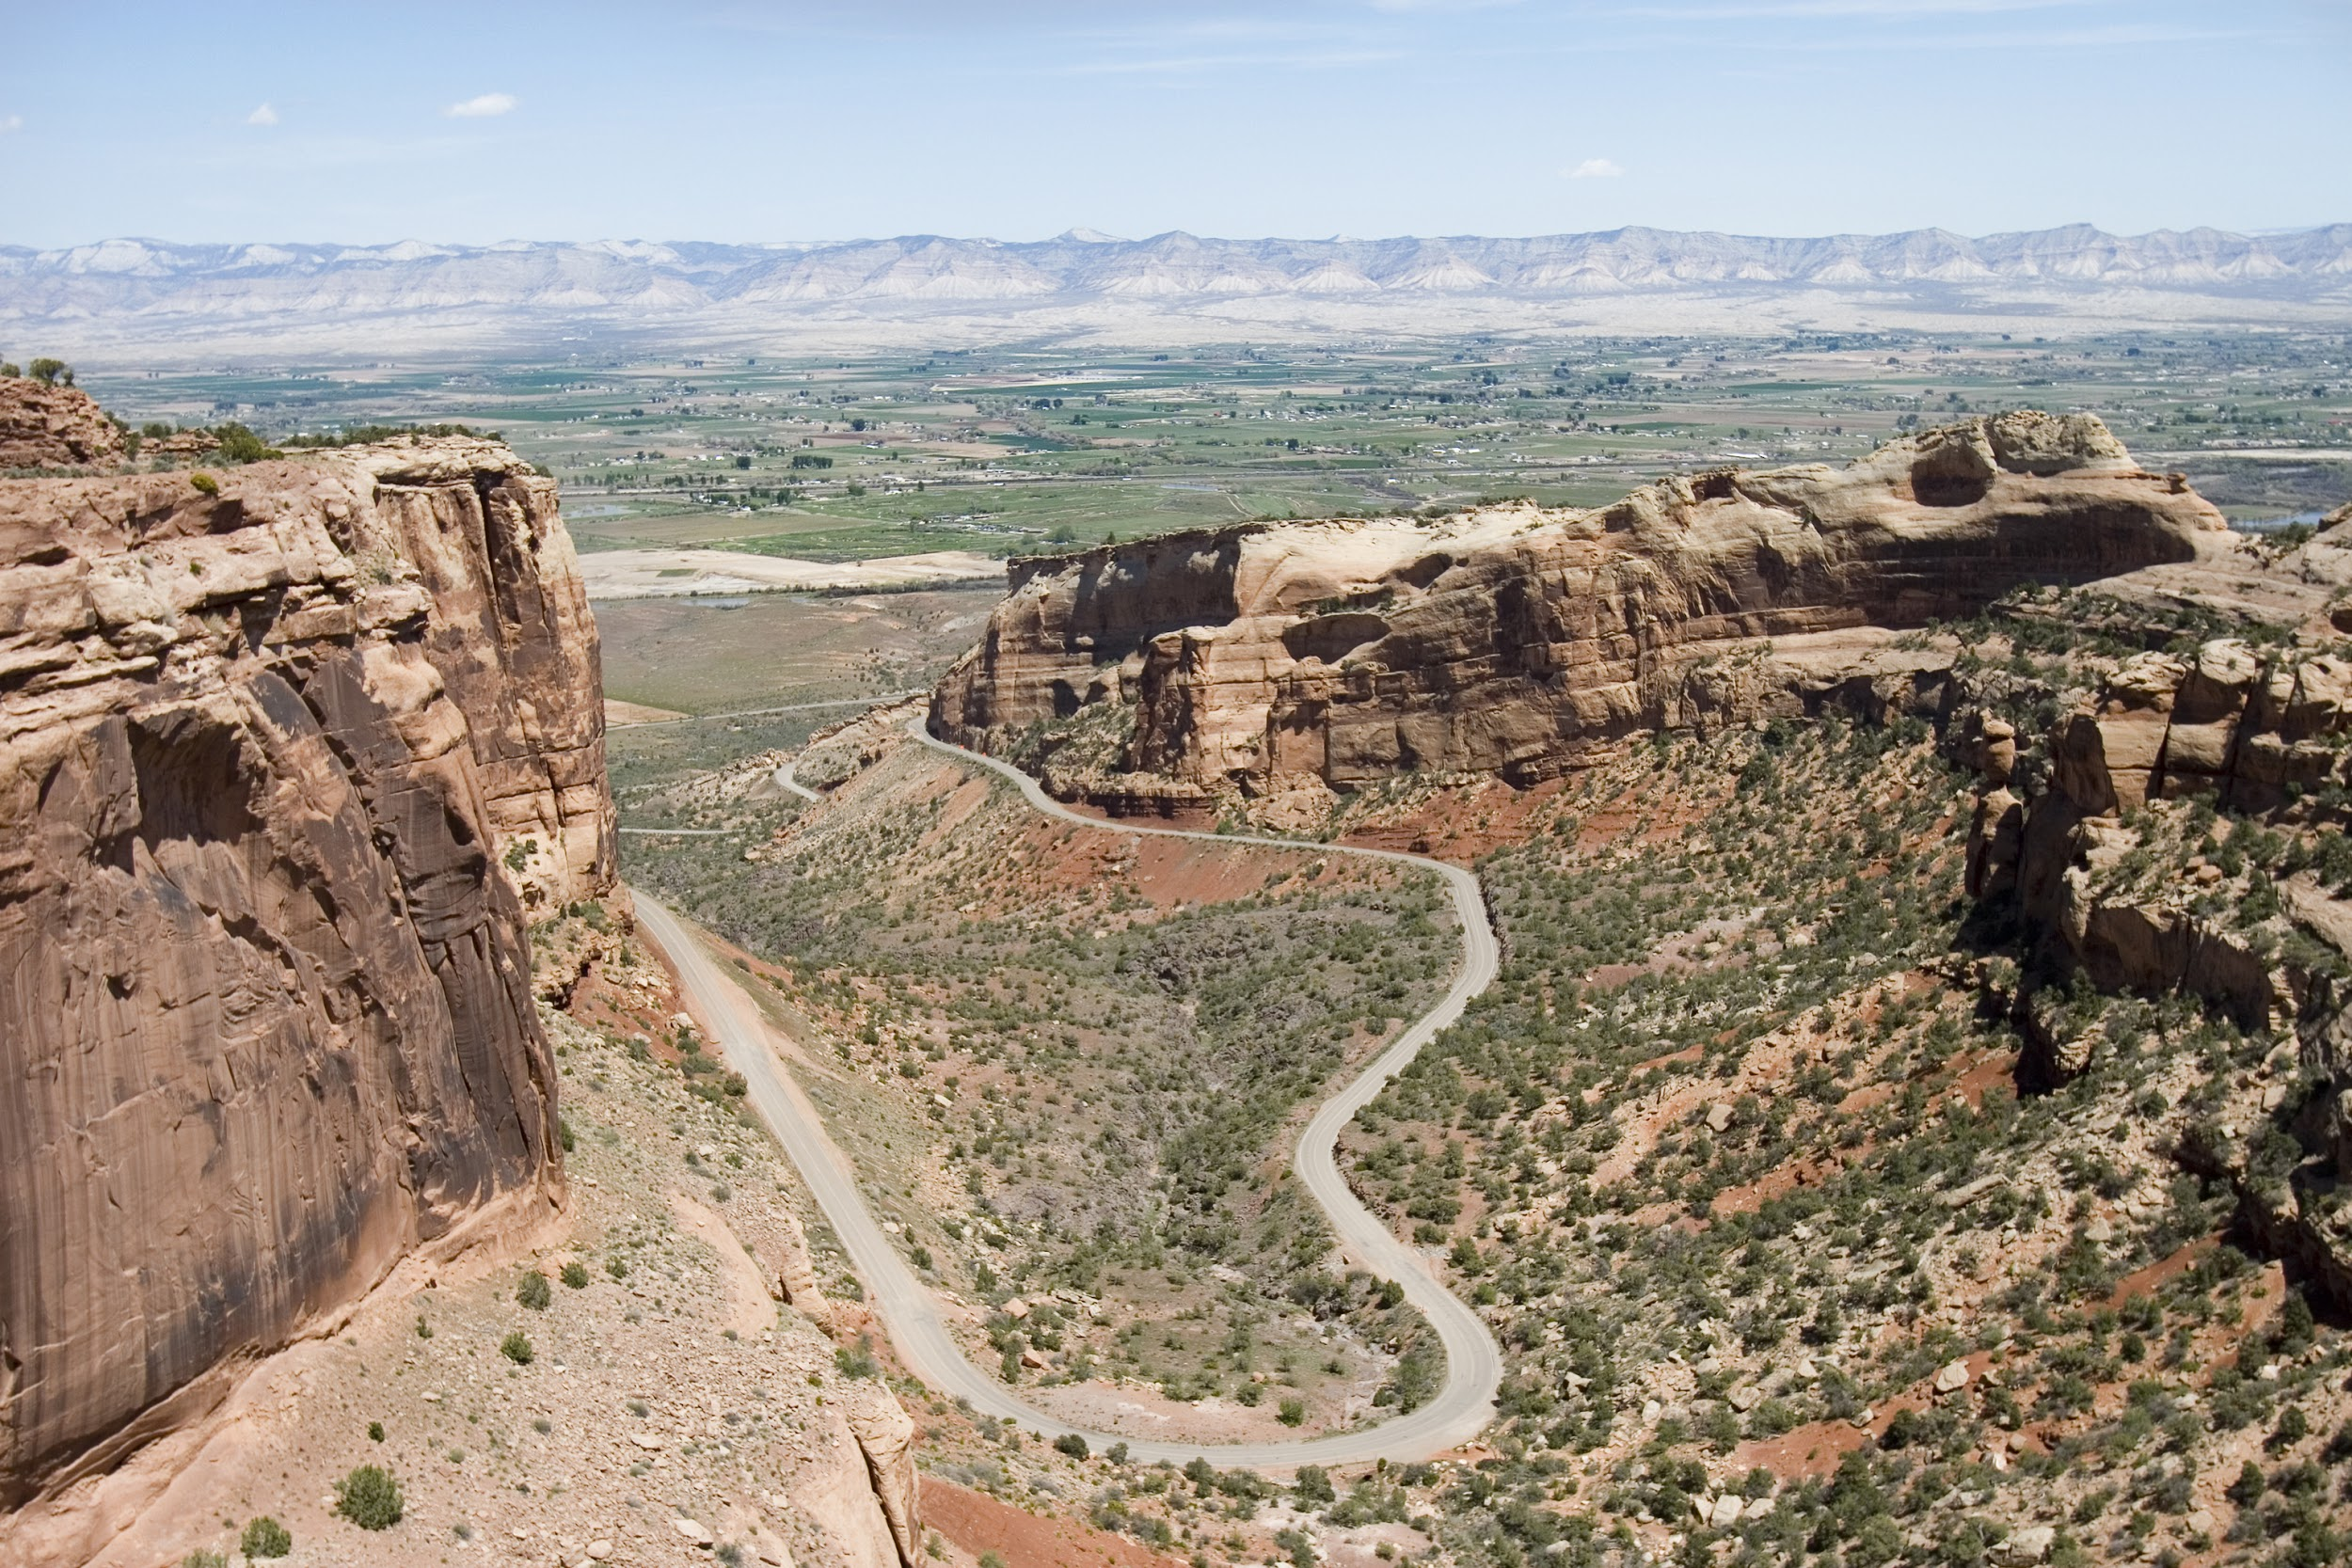 This image shows part of the Grand Mesa and part of Colorado National Monument